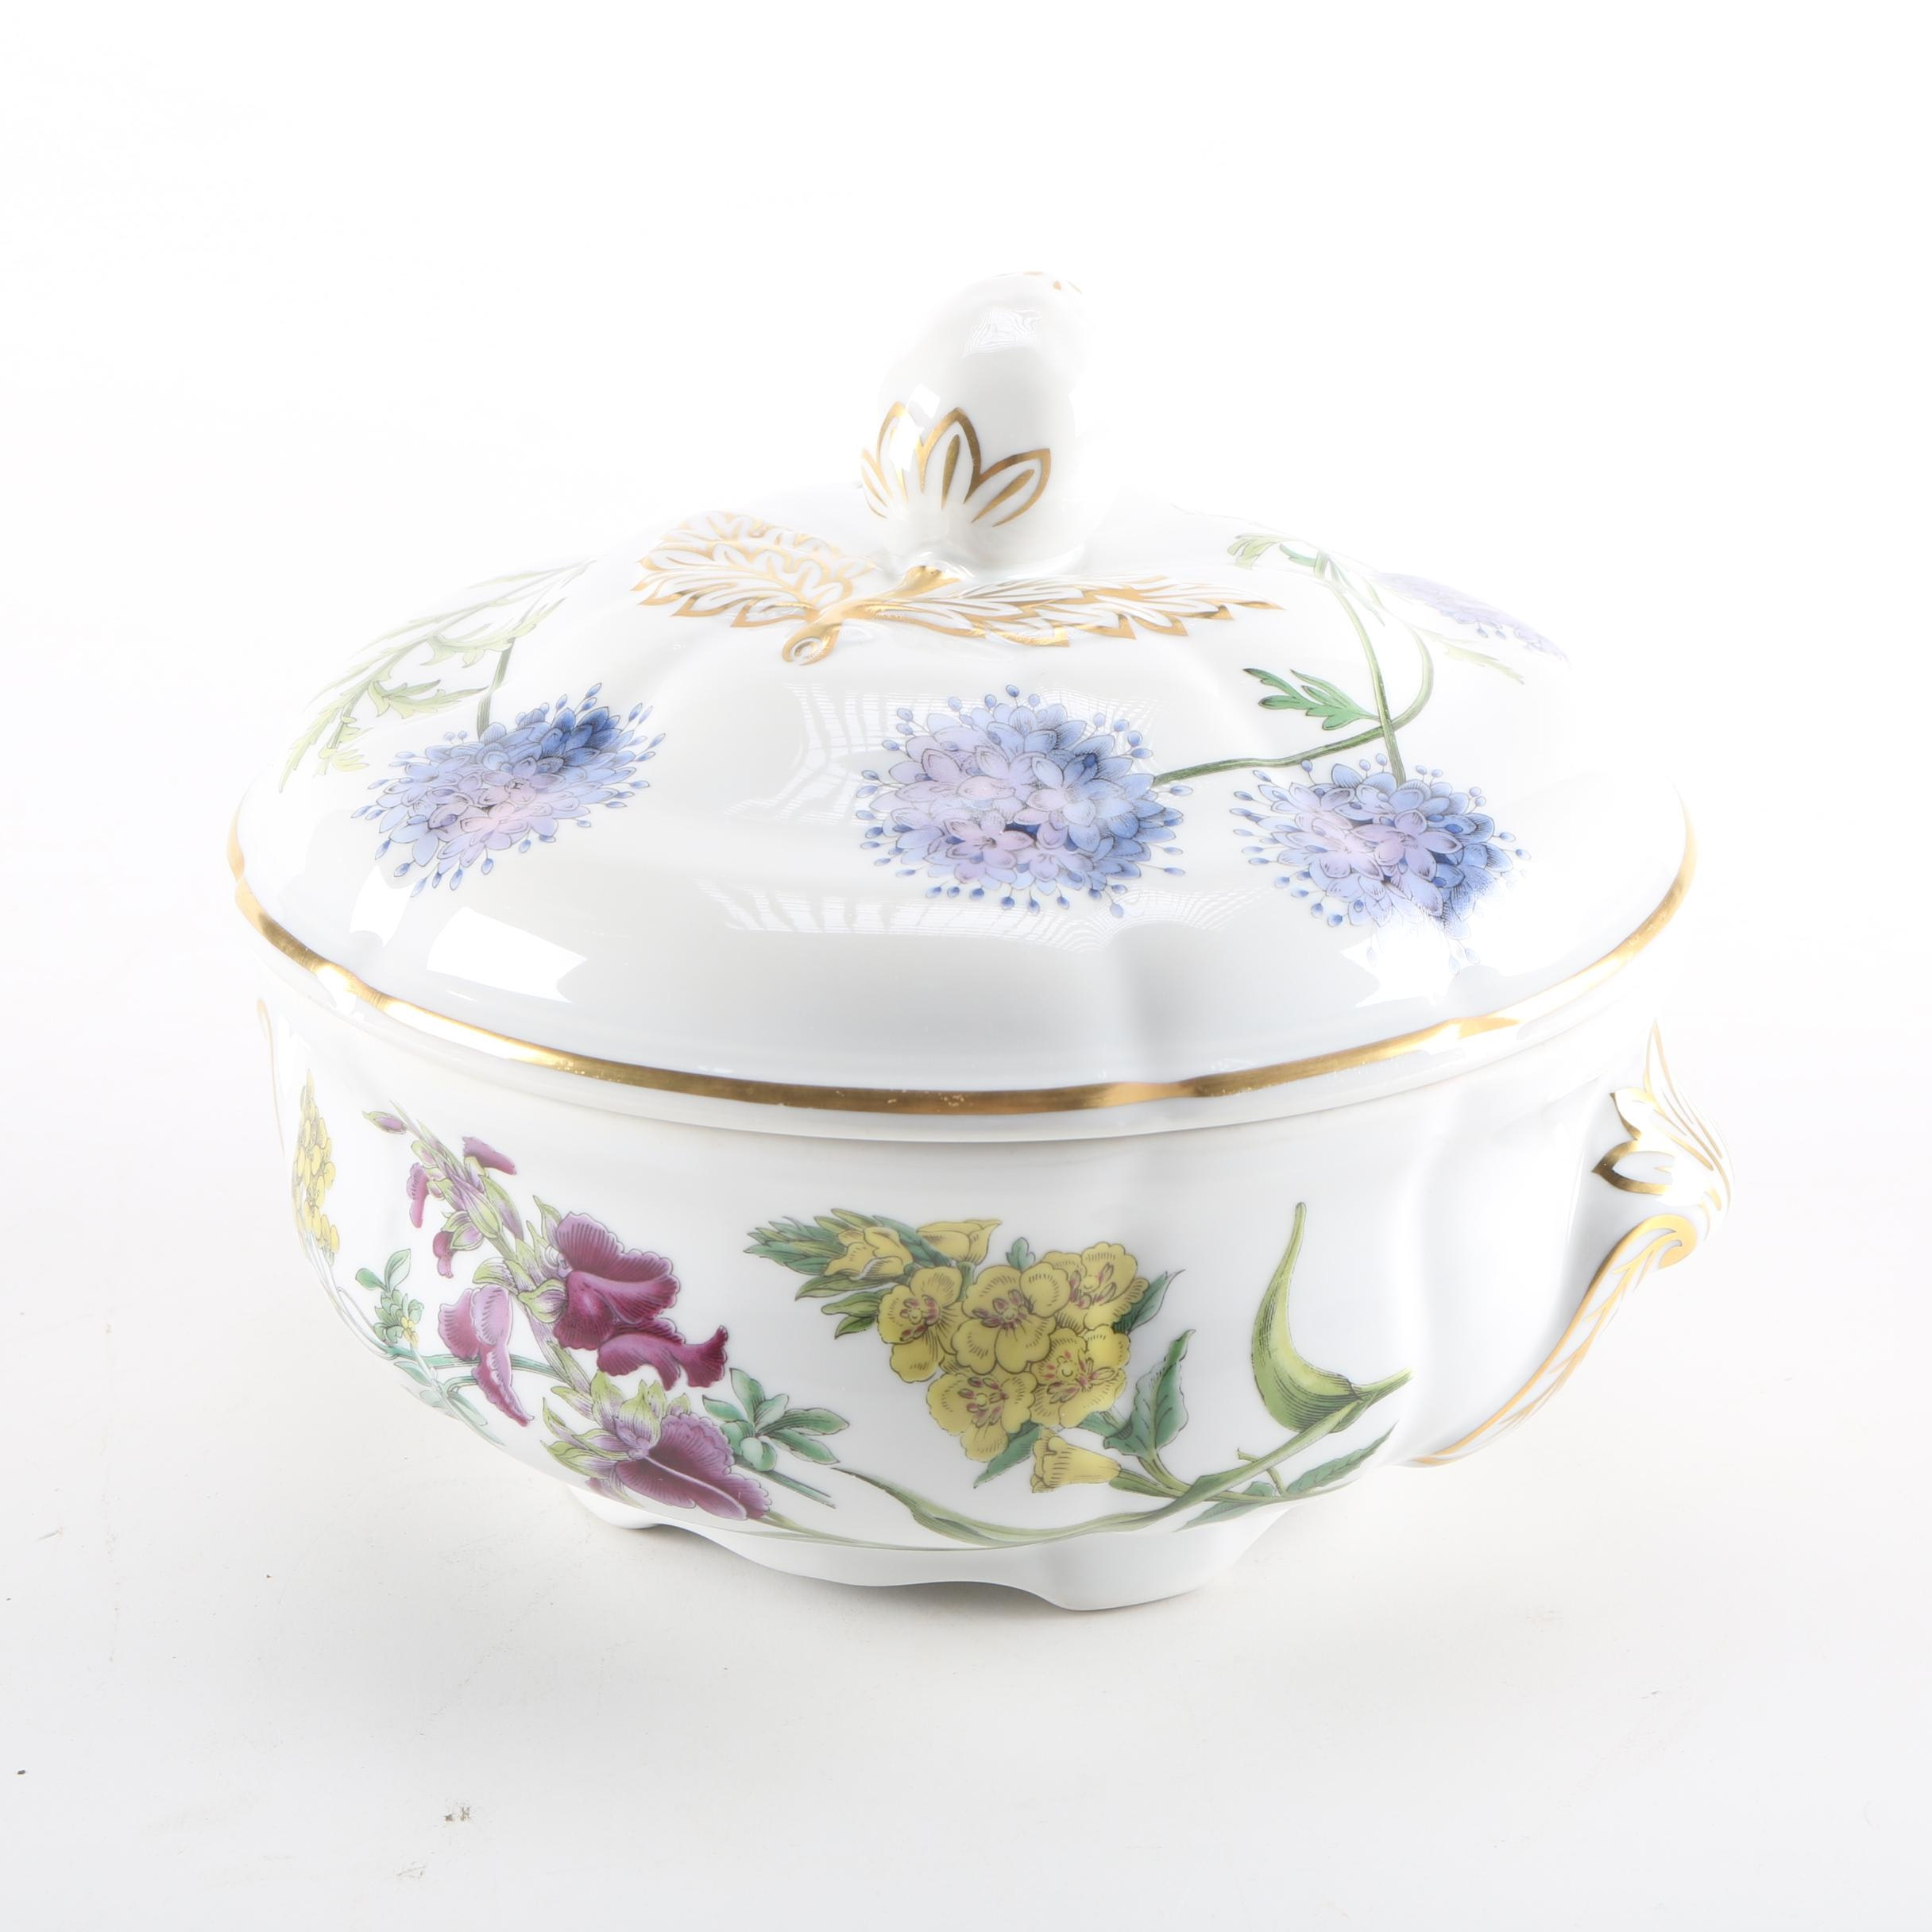 Spode \ Stafford Flowers\  Oven to Tableware ...  sc 1 st  EBTH.com : spode stafford flowers oven to tableware - pezcame.com